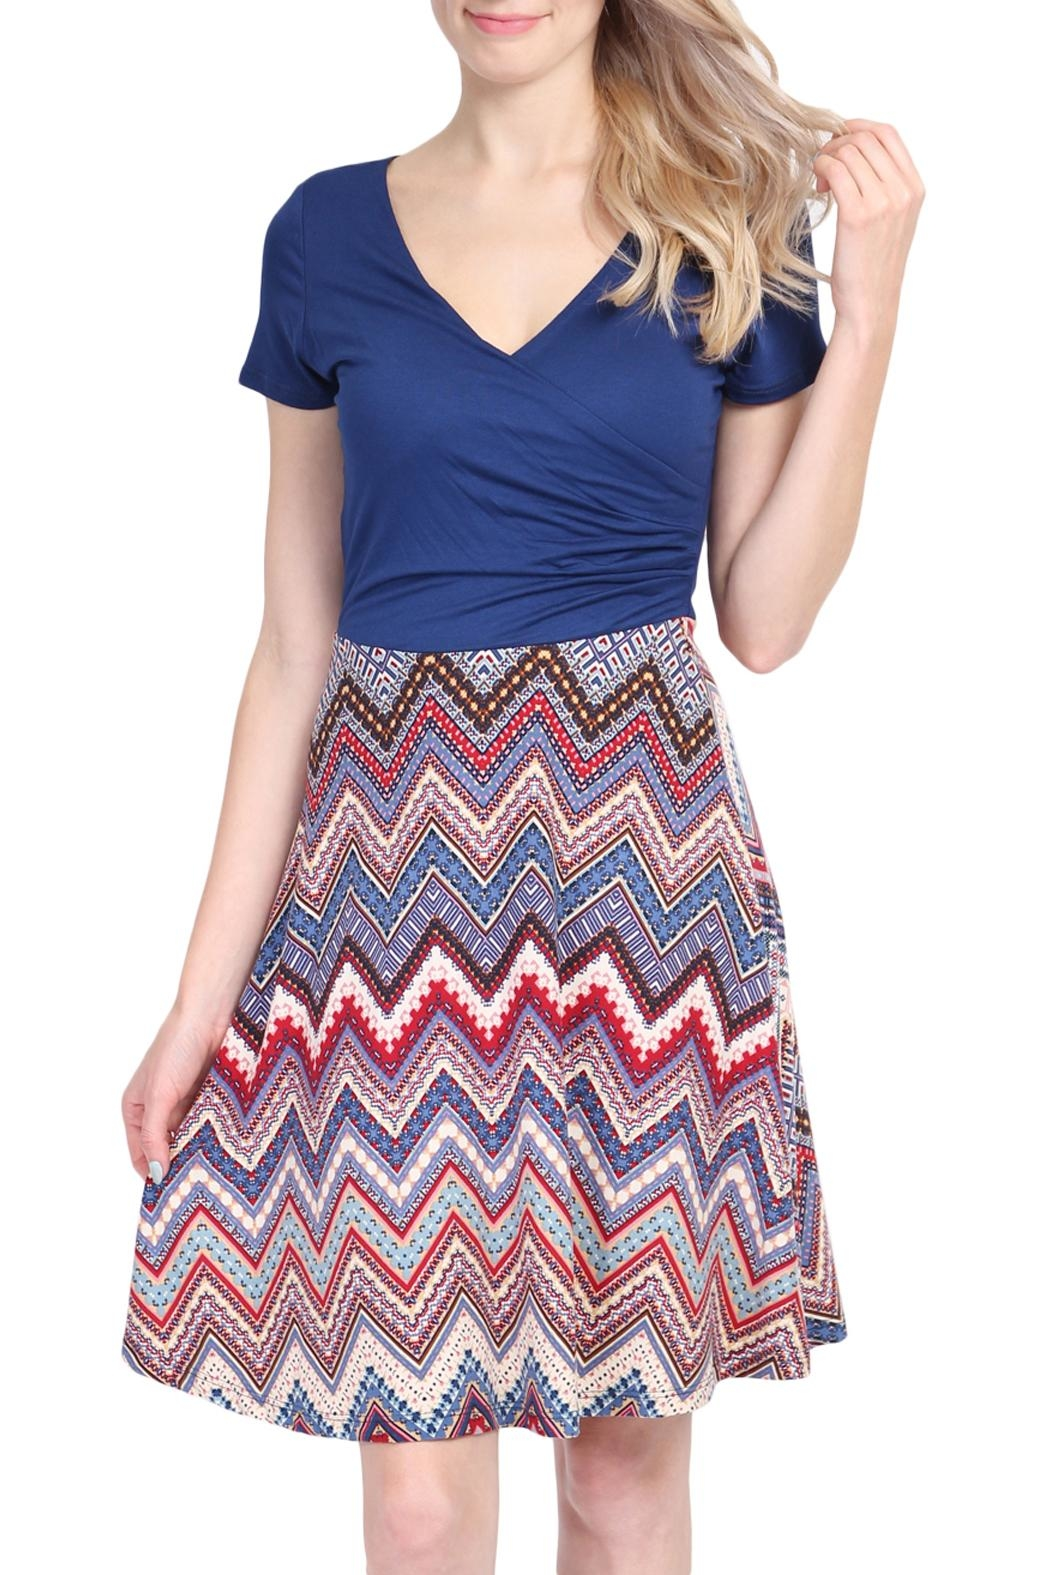 Riah Fashion Short Sleeve Chevron Dress - Front Cropped Image